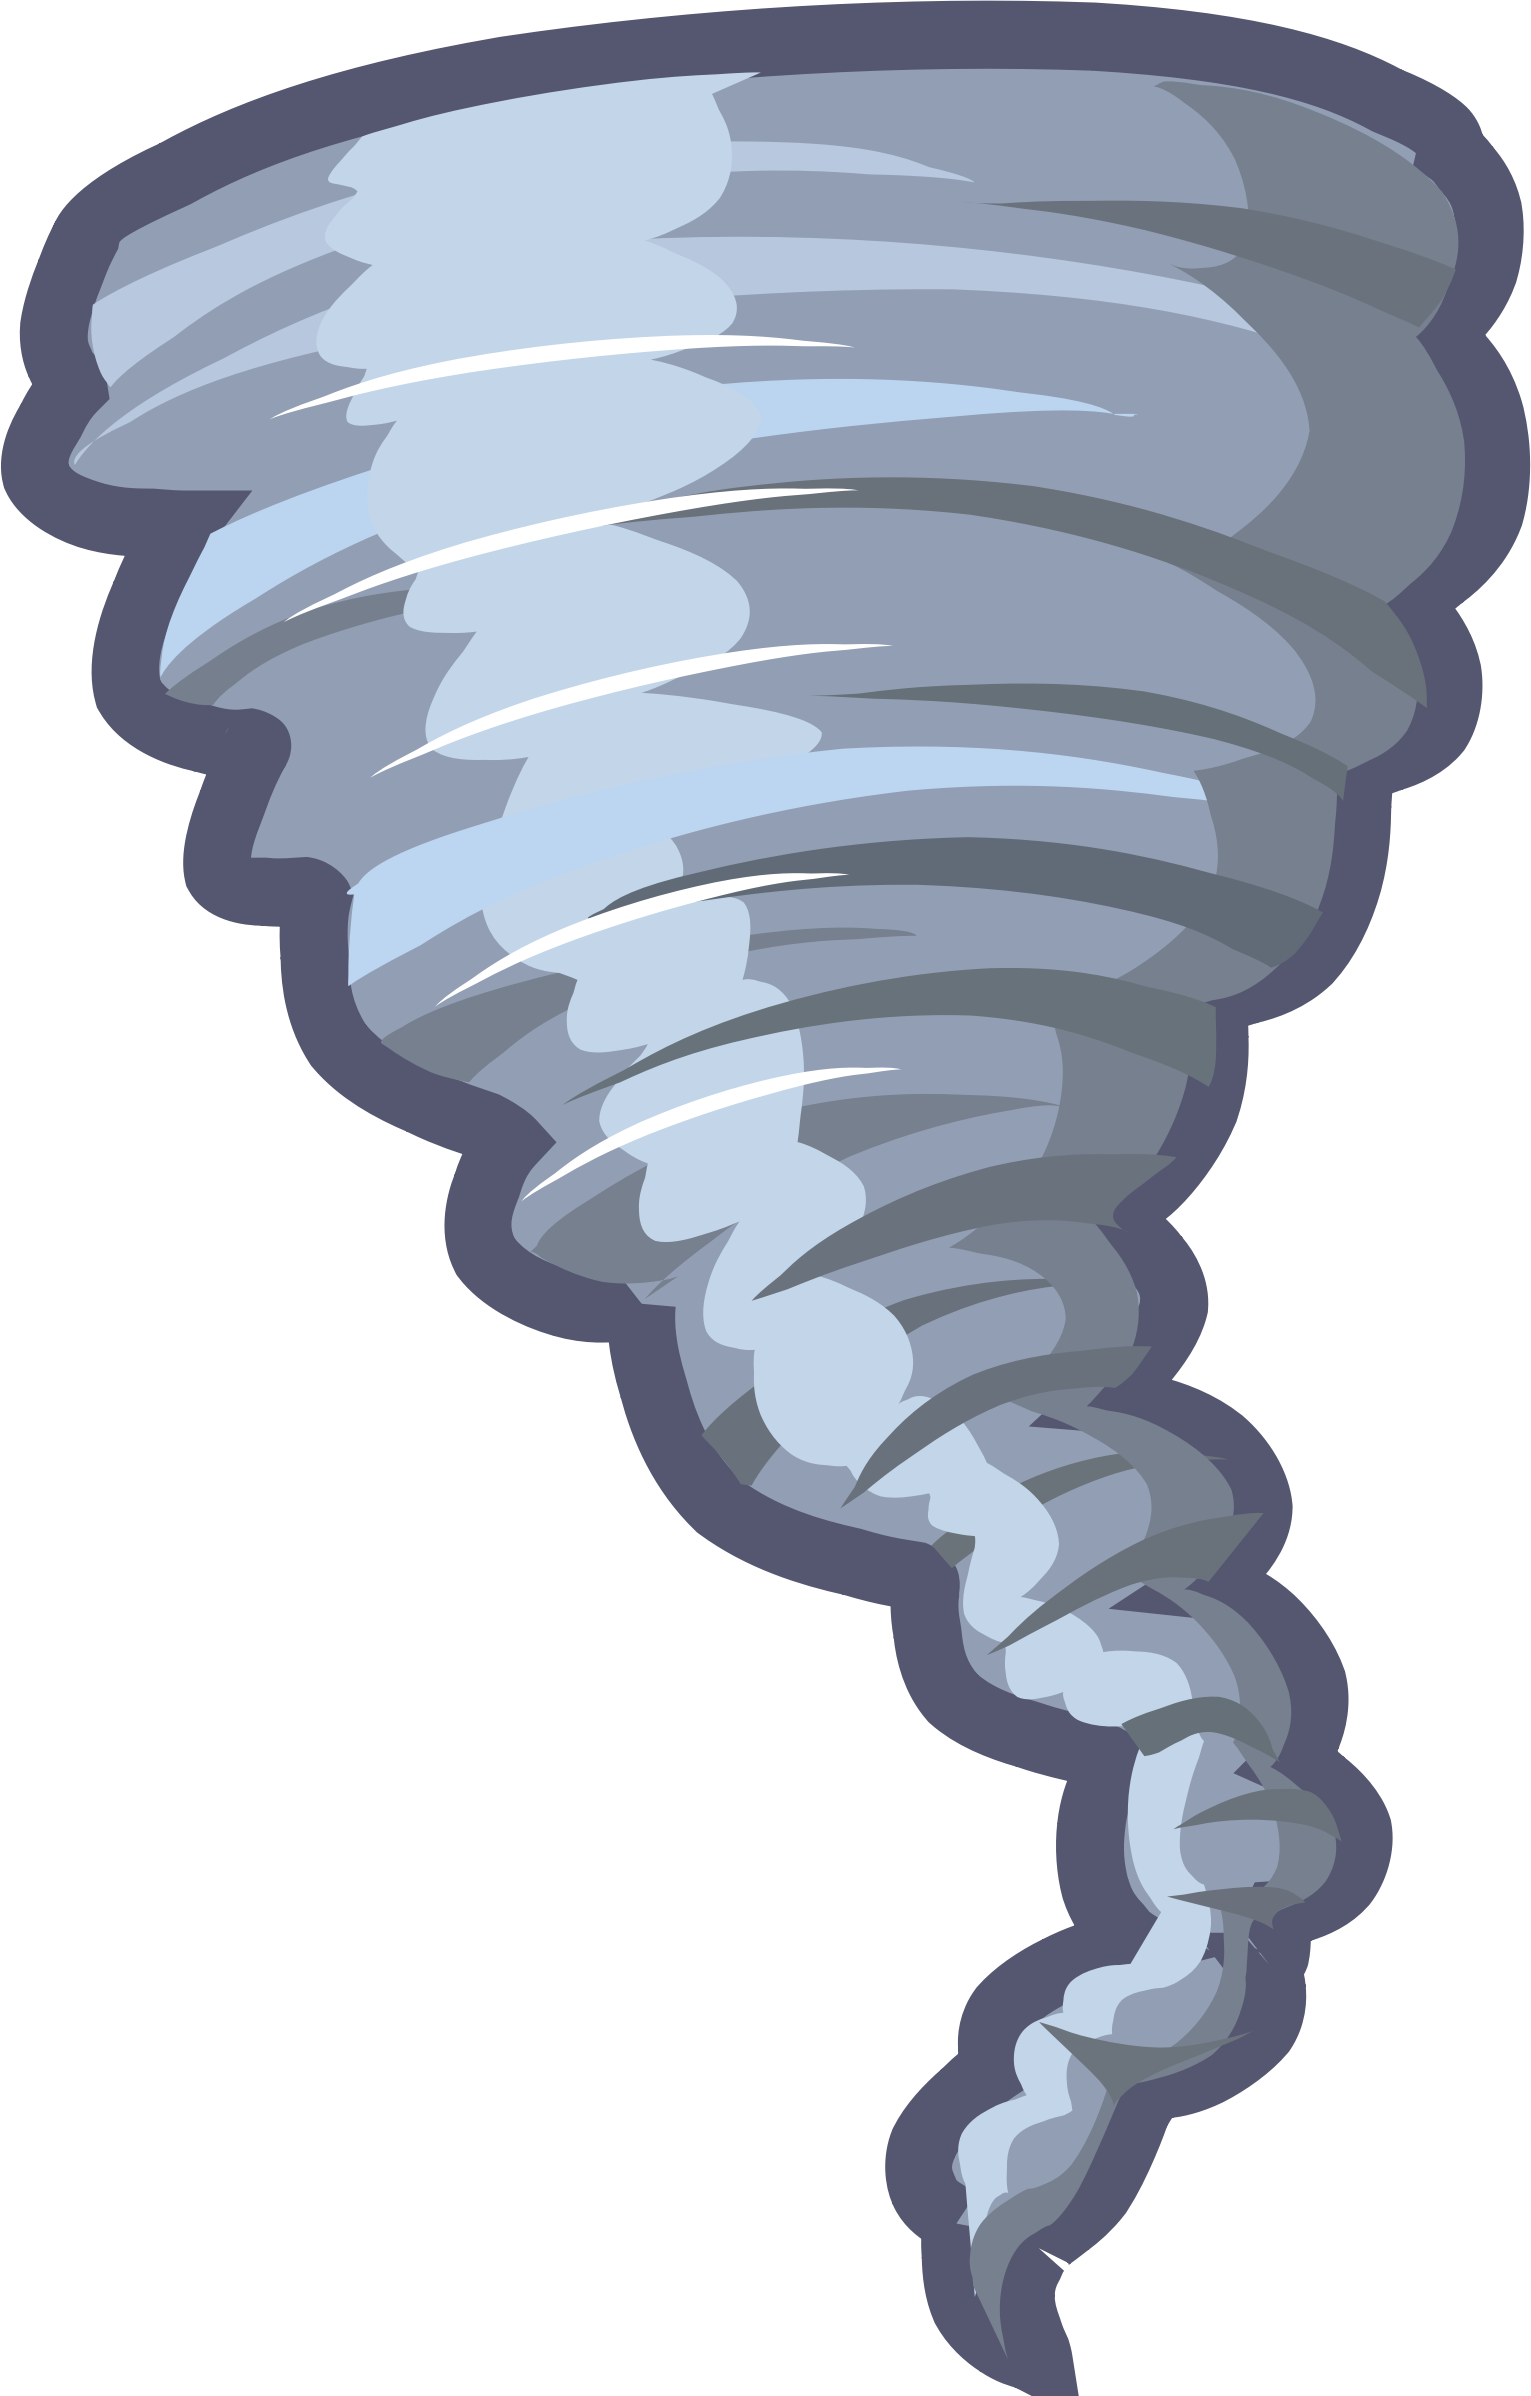 Animated png images. Cartoon tornado animation icons